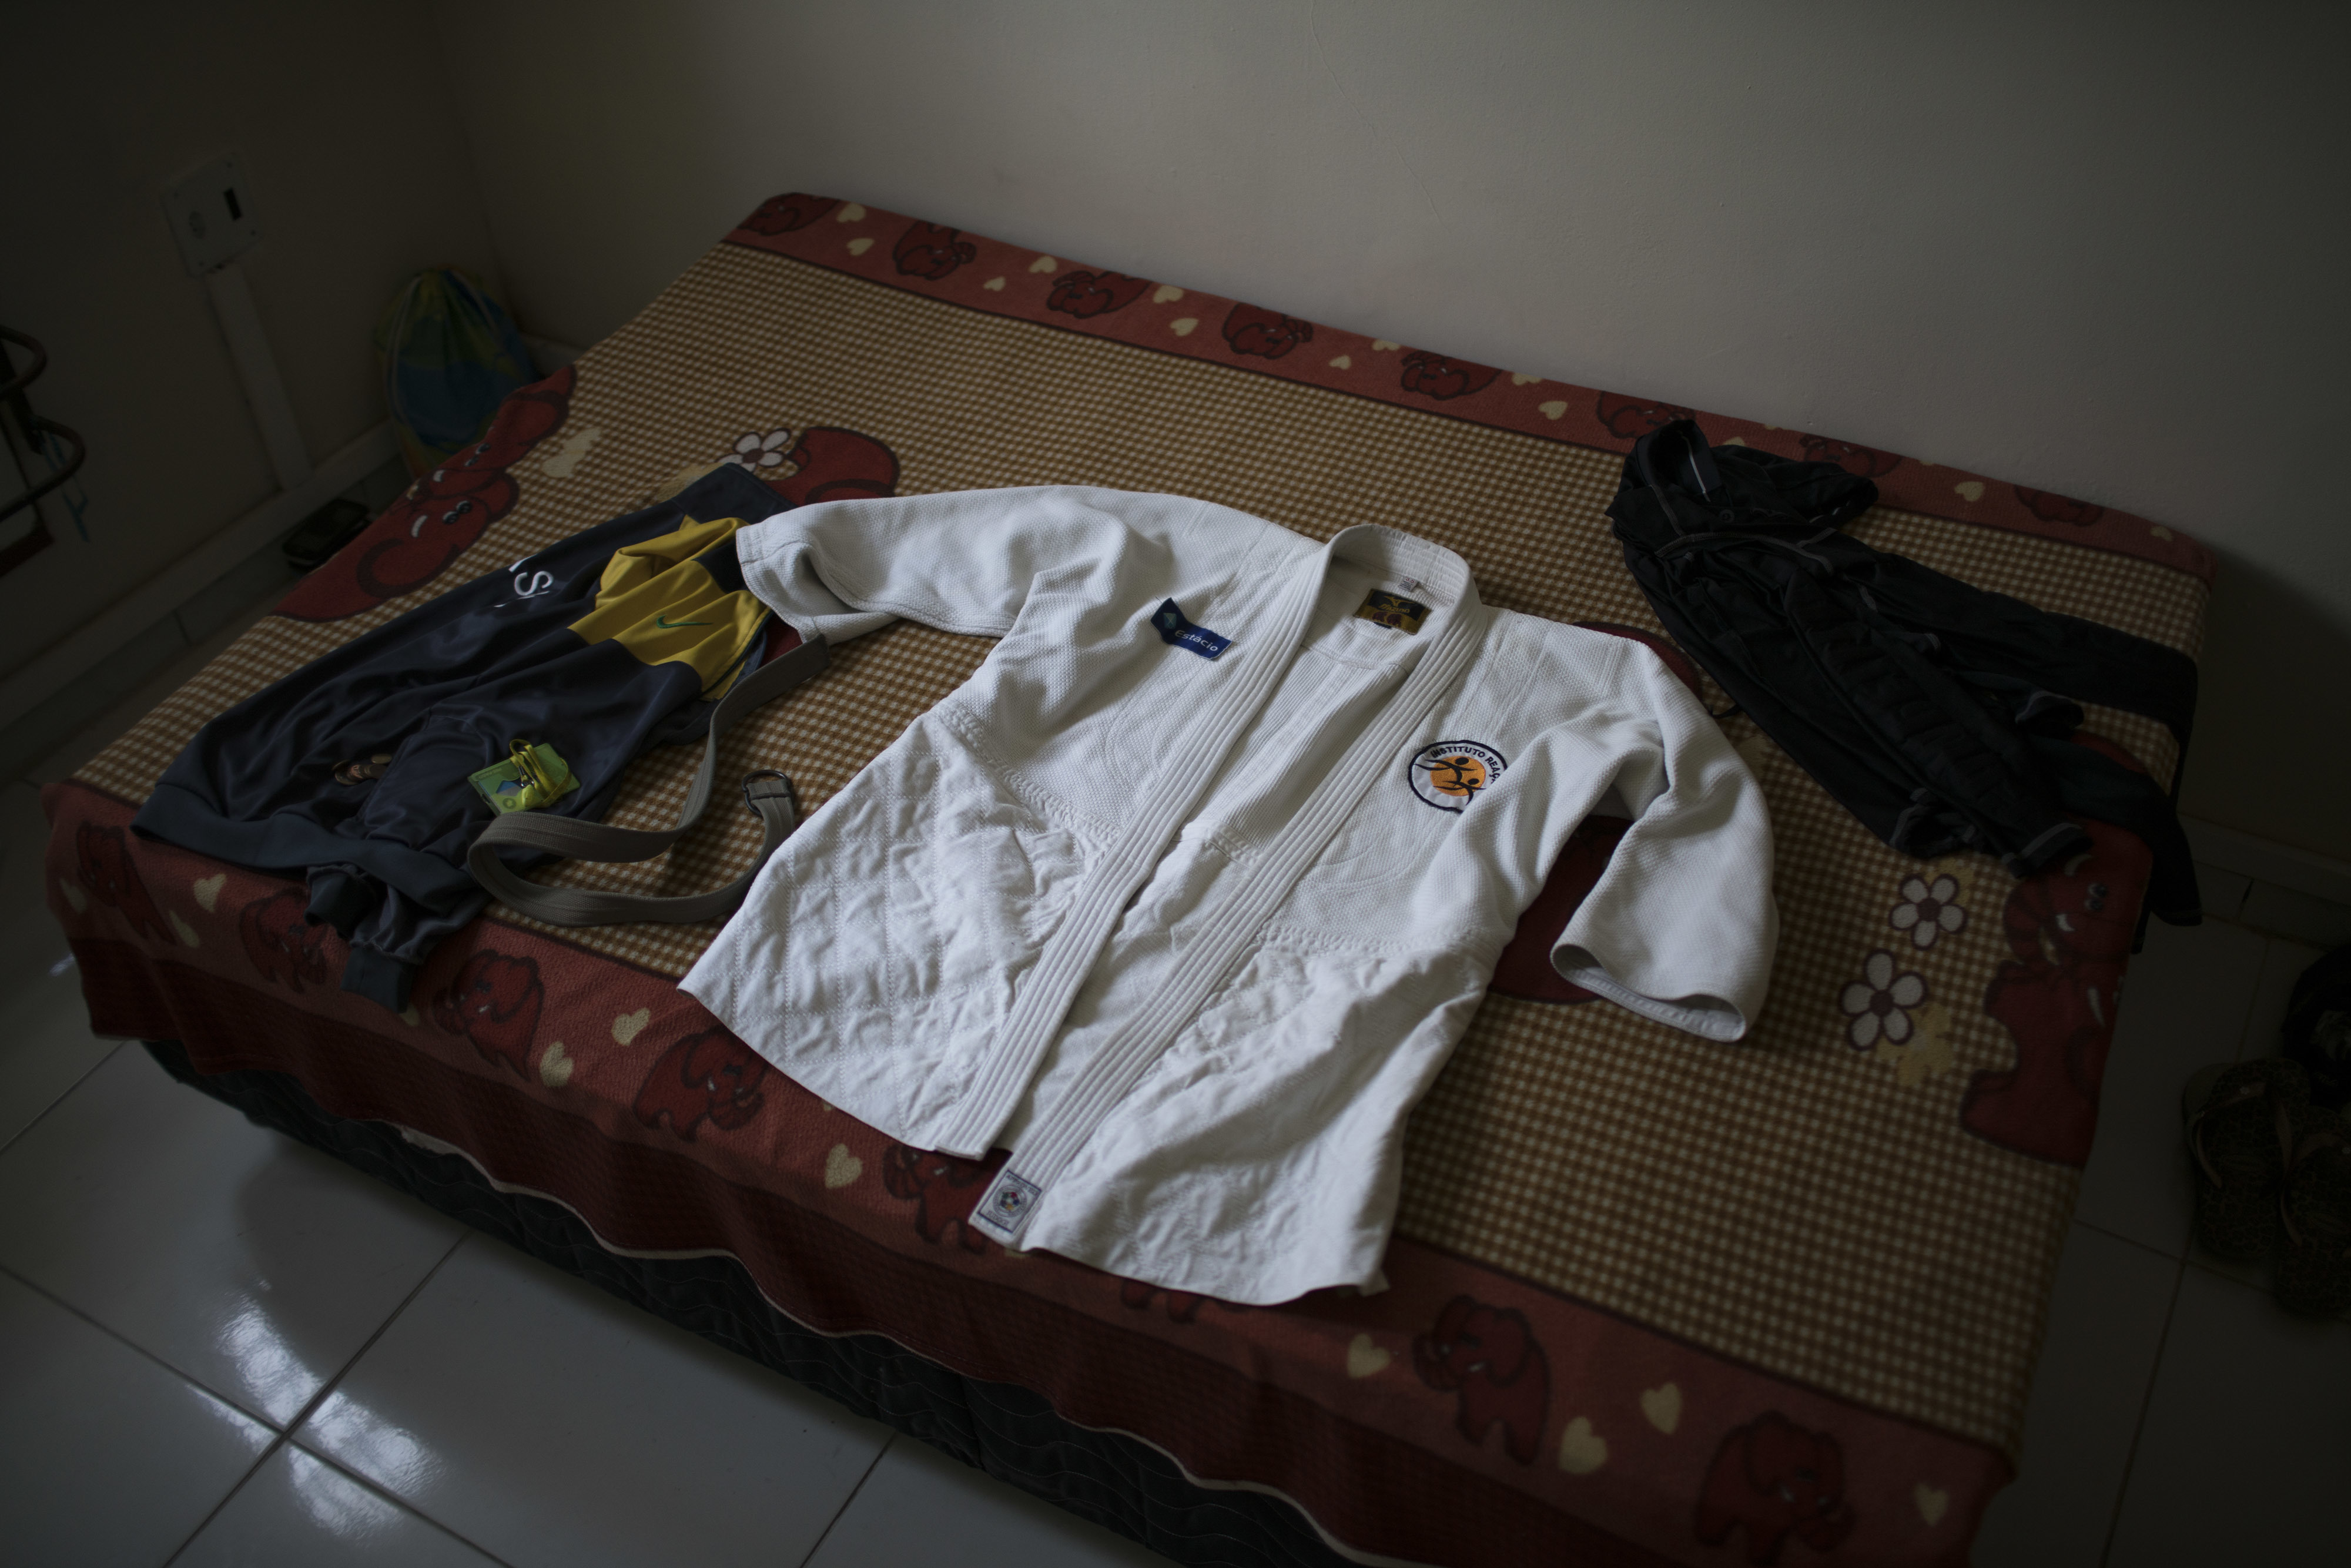 In this May 28, 2016 photo, the judo gi of Yolande Mabika, a refugee from the Democratic Republic of Congo, sits on her bed after she cleaned it at her newly rented apartment in Rio de Janeiro, Brazil. Mabika is hopeful that she will be part of the first ever team competing in the Olympic Games under the Olympic flag, instead of any one country. This week, the two hopefuls will find out whether they made the cut. (AP Photo/Felipe Dana)